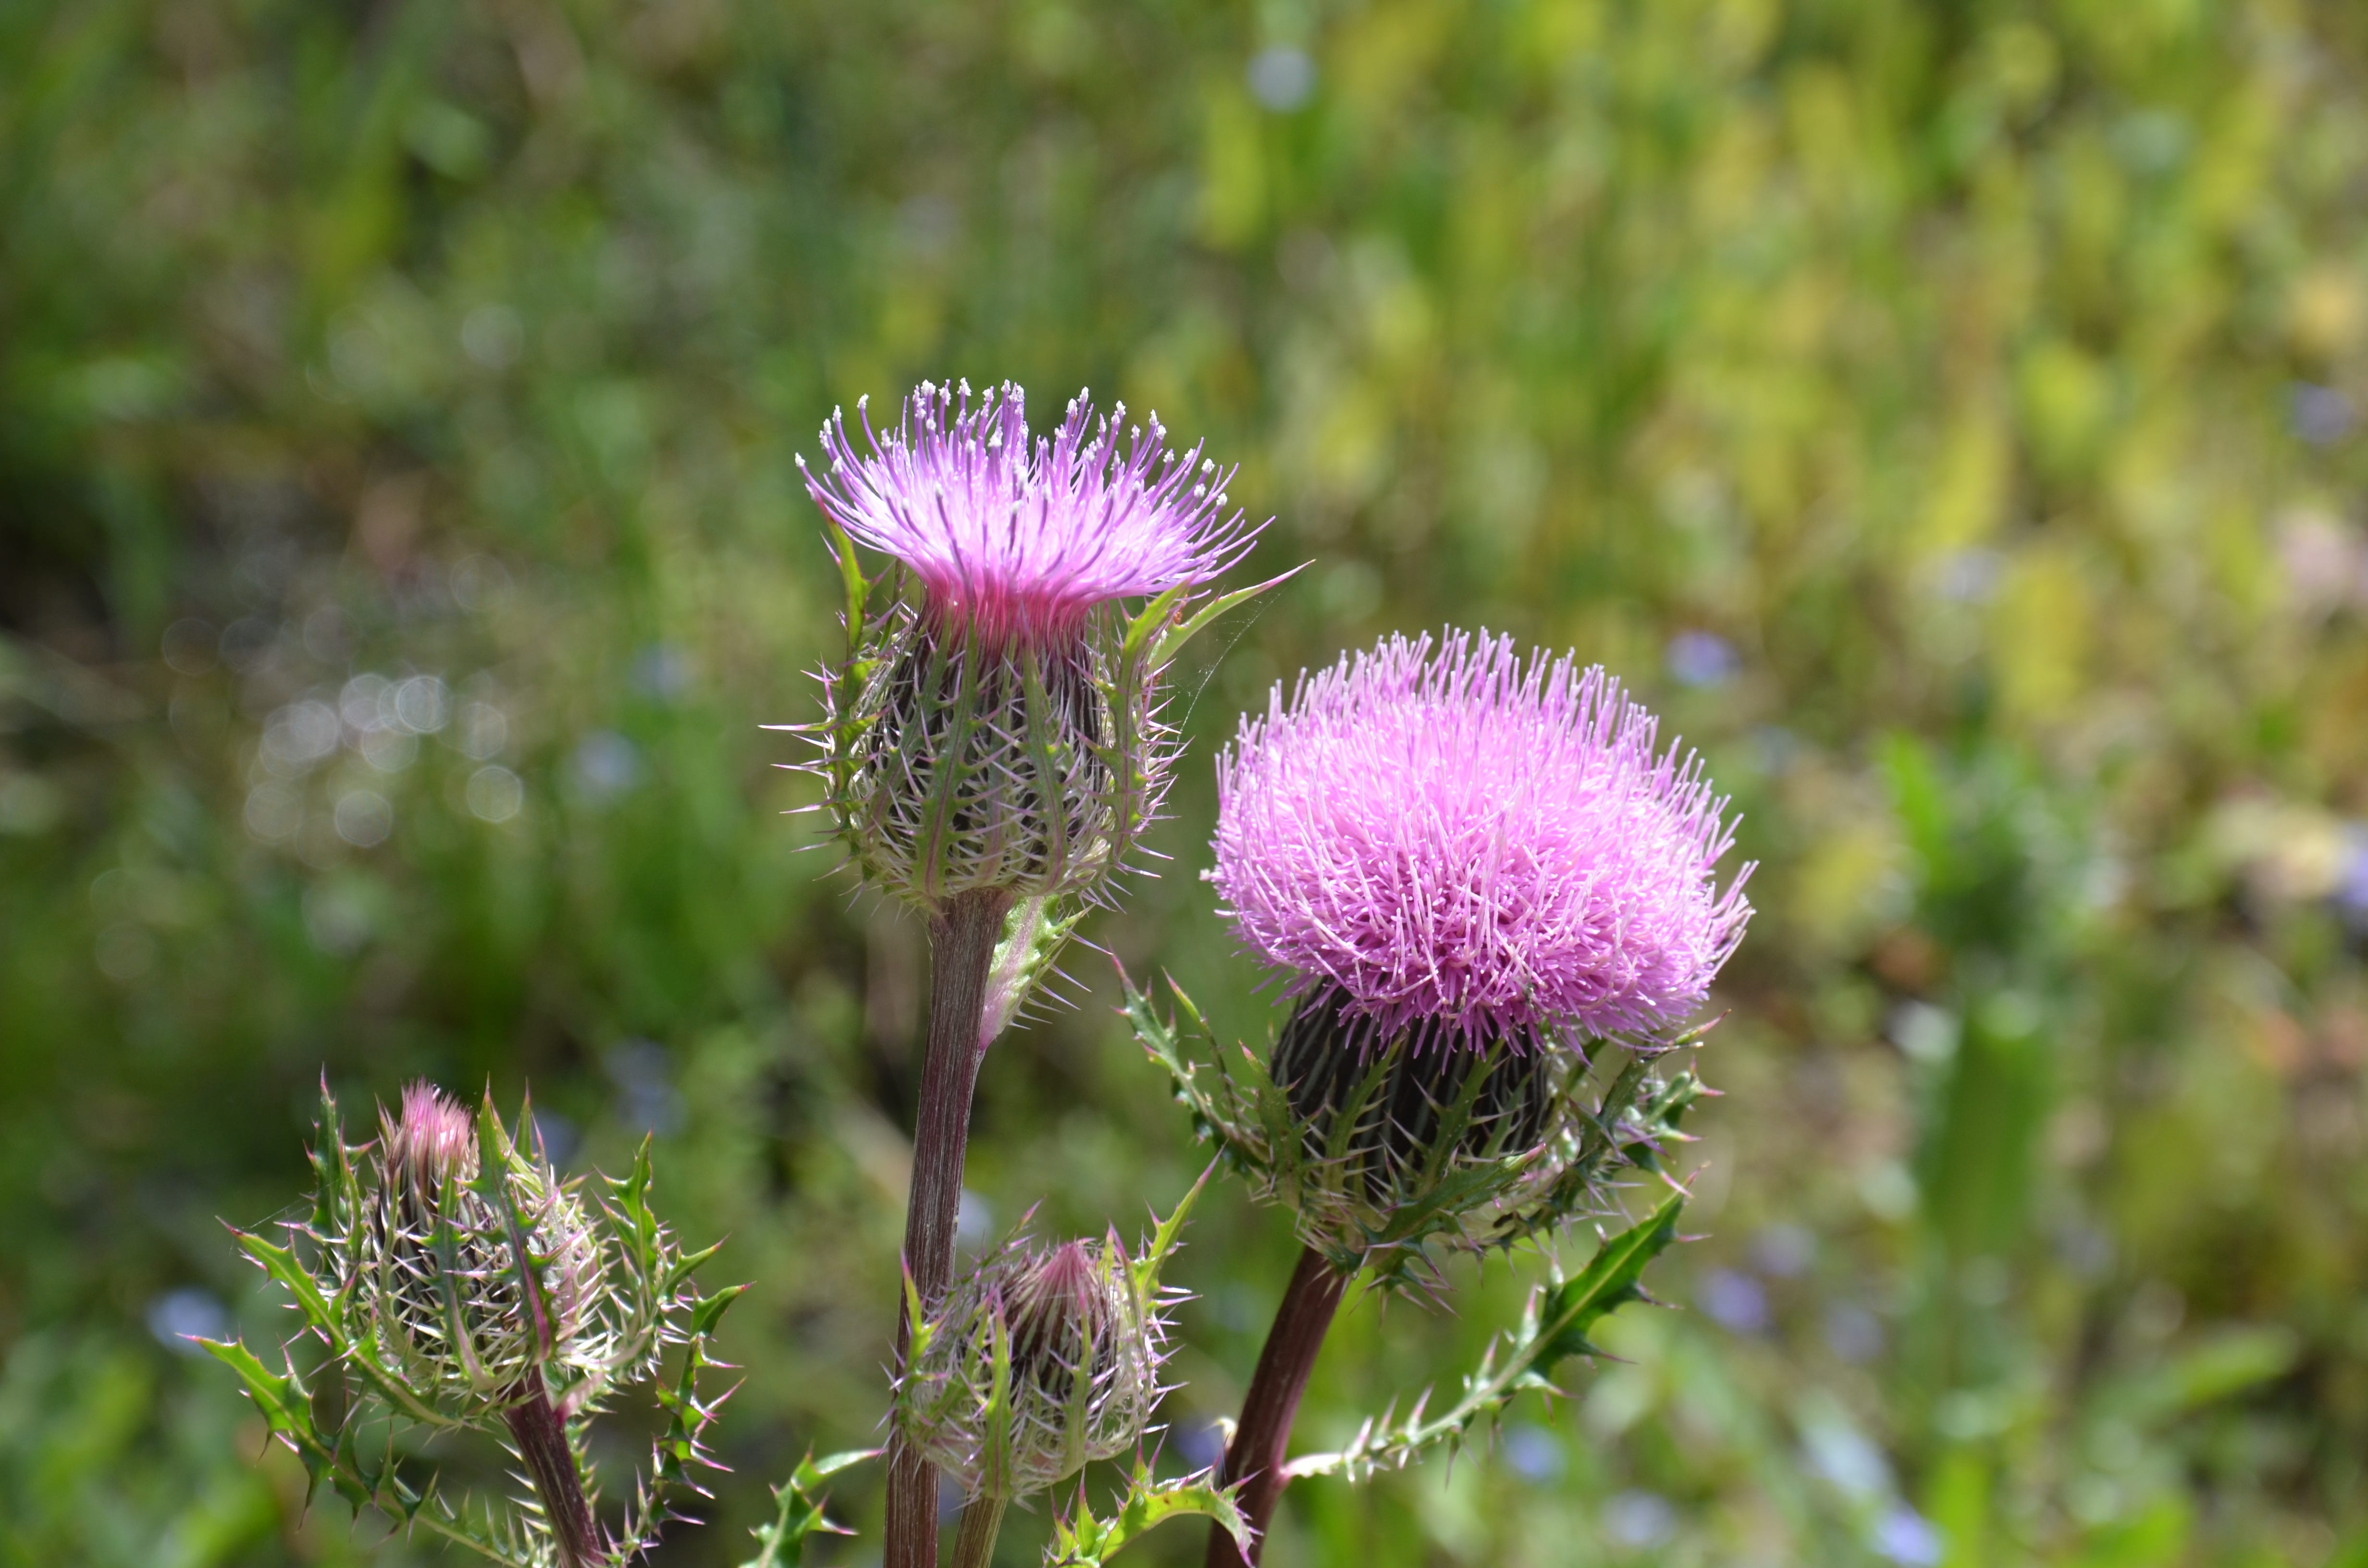 Florida thistles can produce up to 4,000 seeds per plant